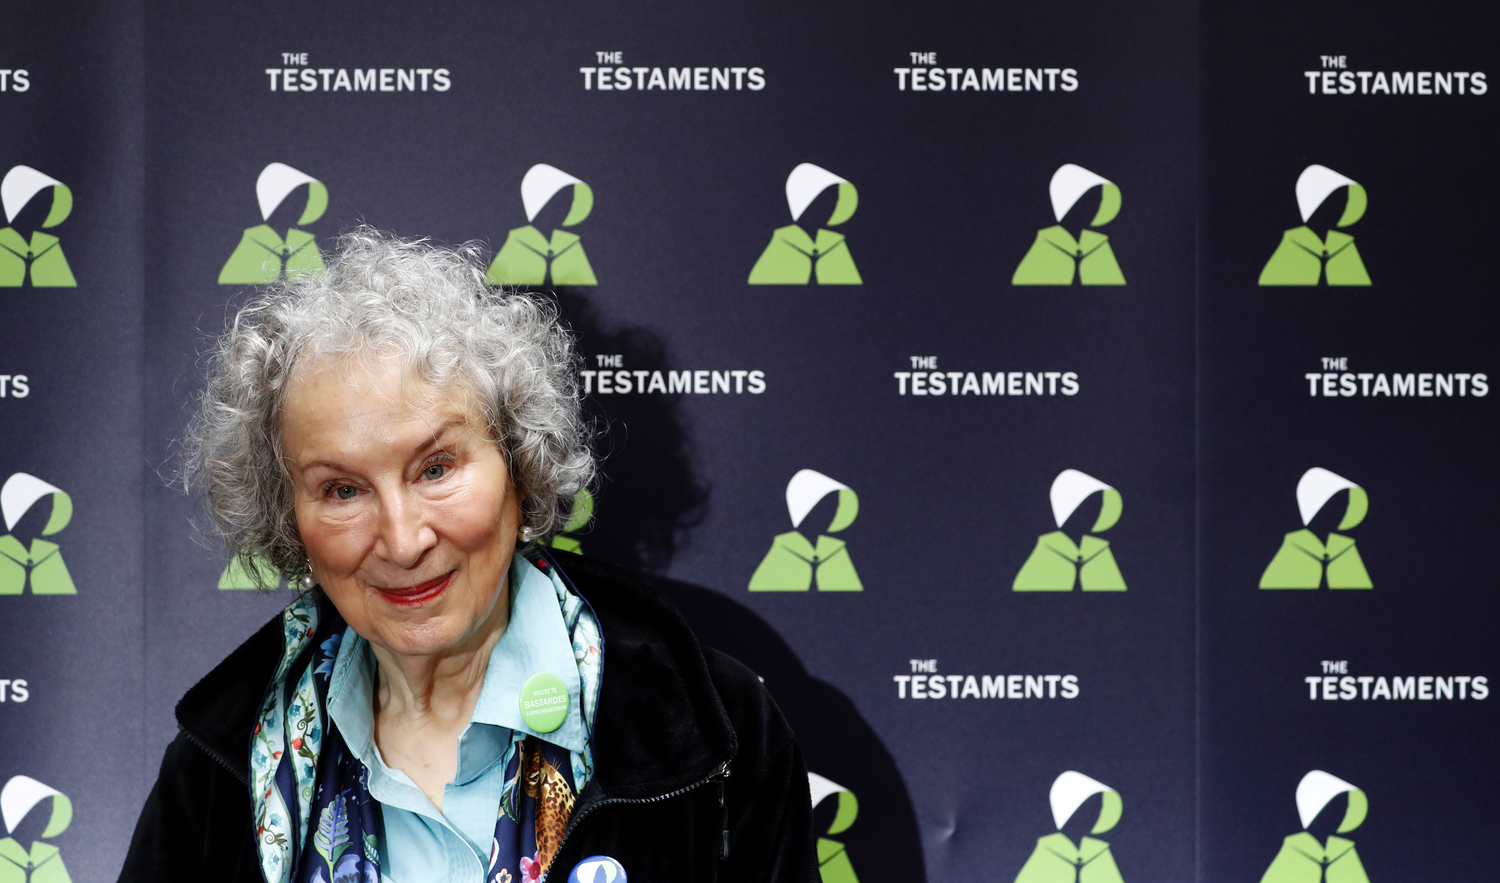 """Margaret Atwood's """"The Testaments,"""" her long-awaited sequel to """"The Handmaid's Tale,"""" is seeing stellar sales."""